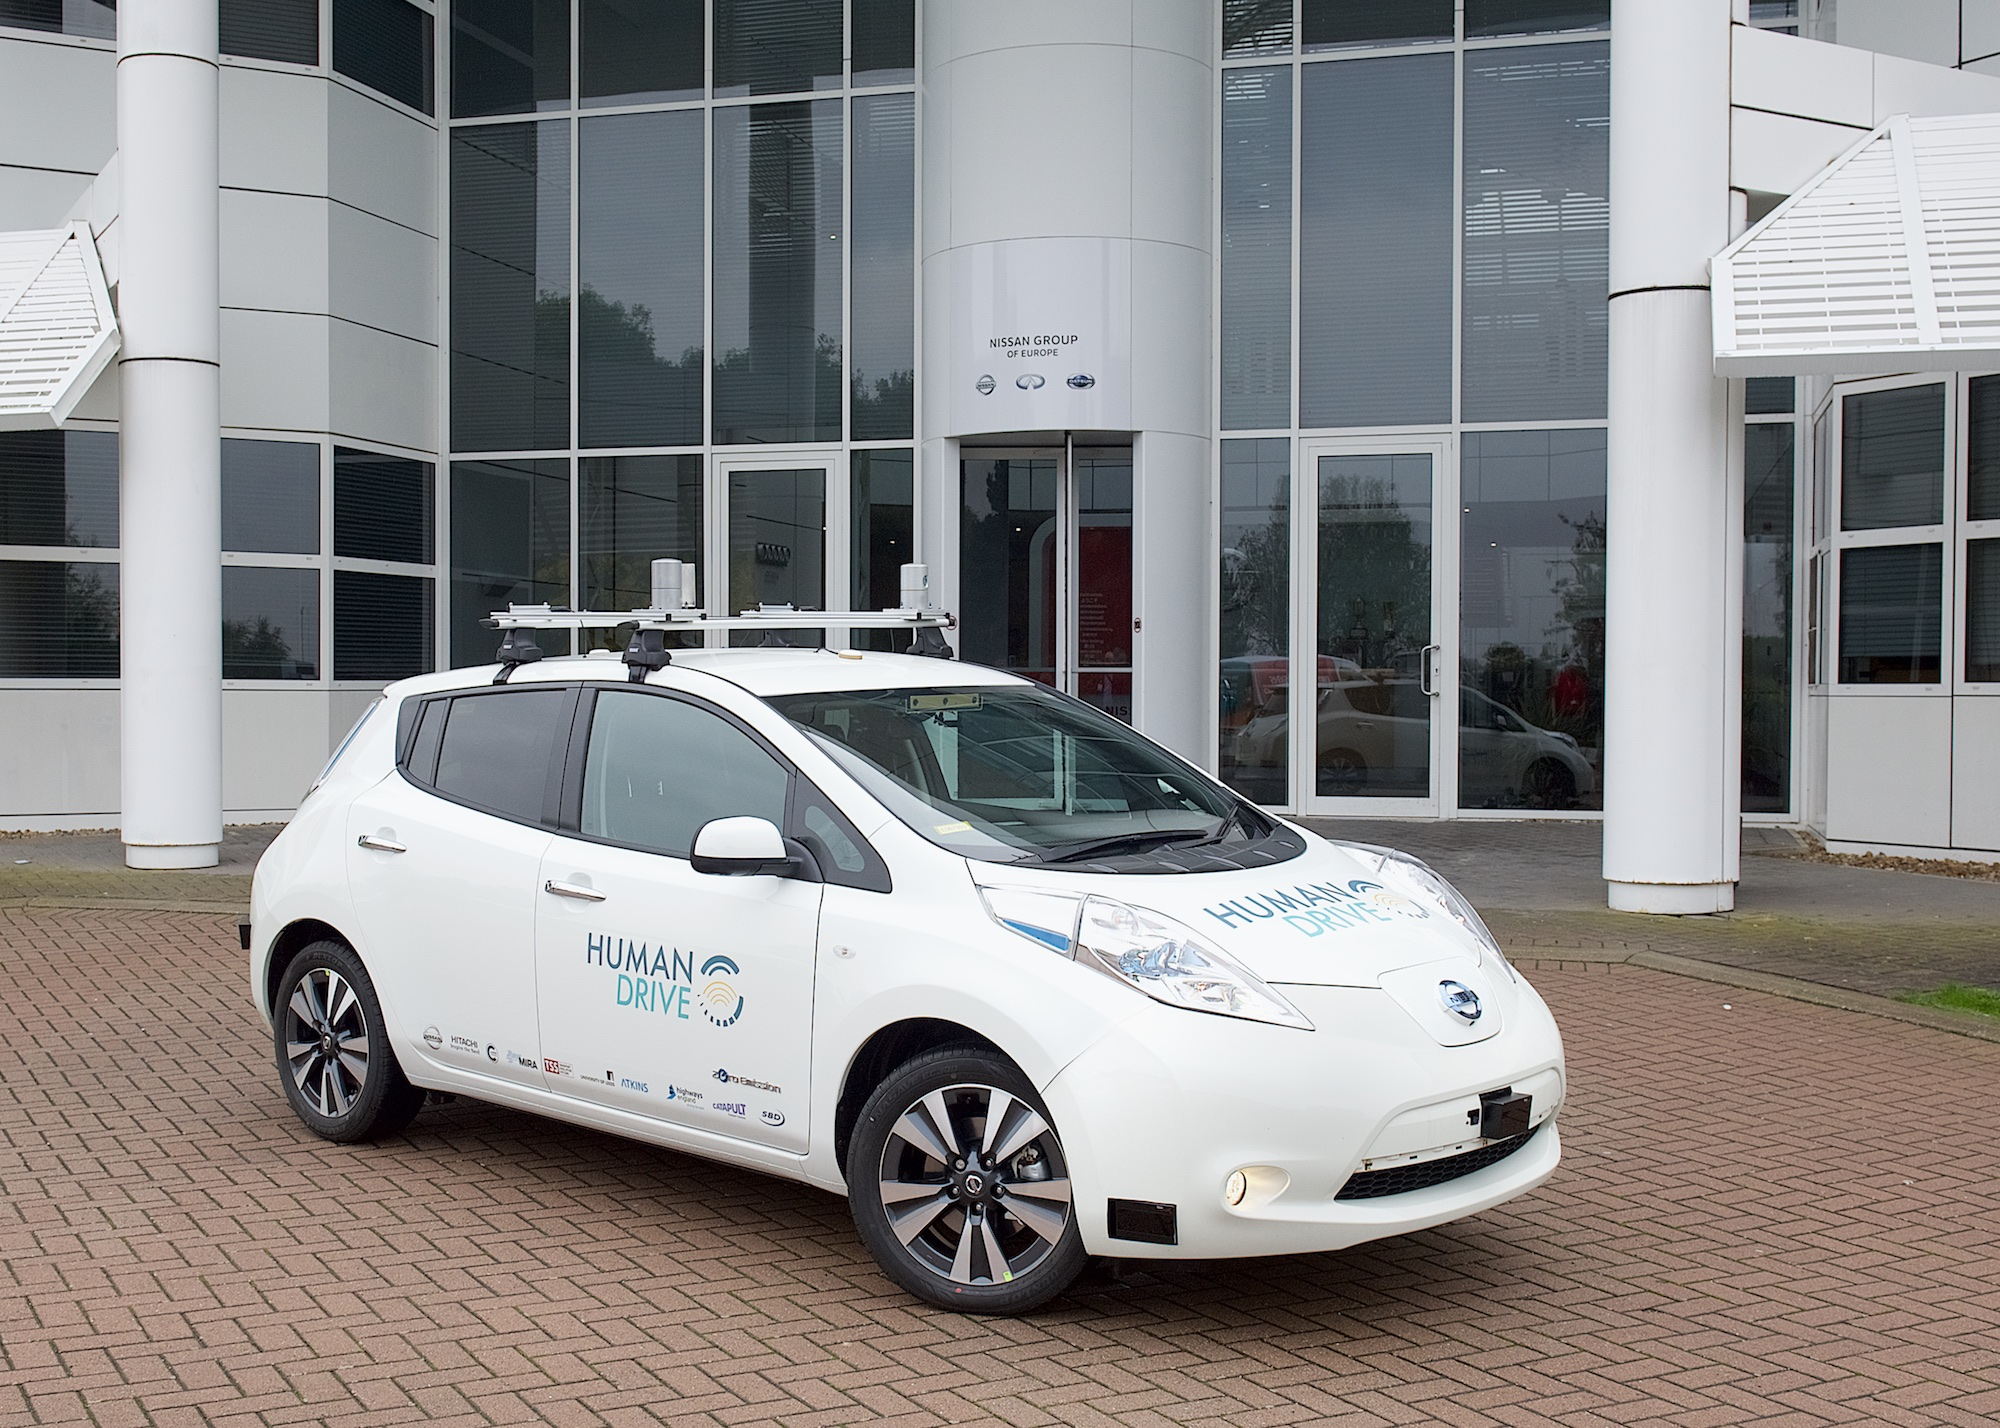 Car used in the HumanDrive autonomous vehicle project